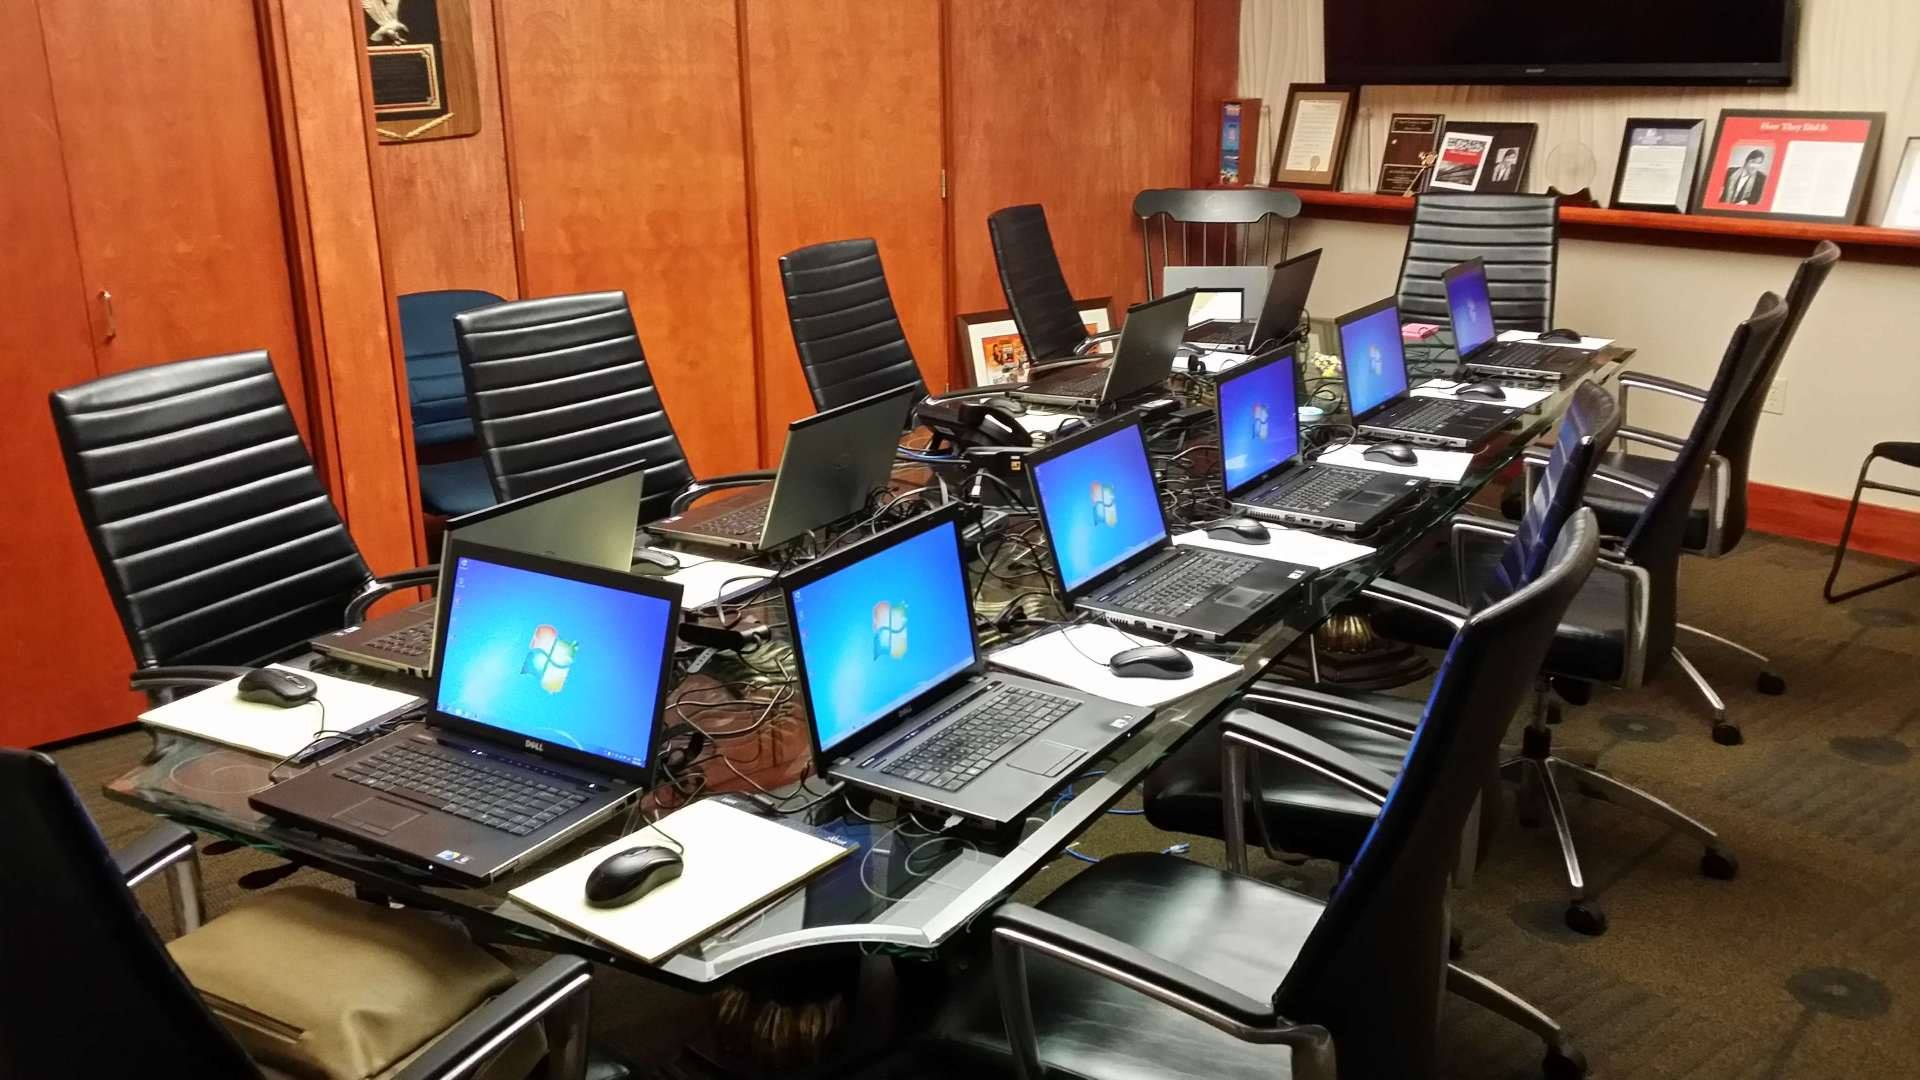 Windows Laptops For Training Class